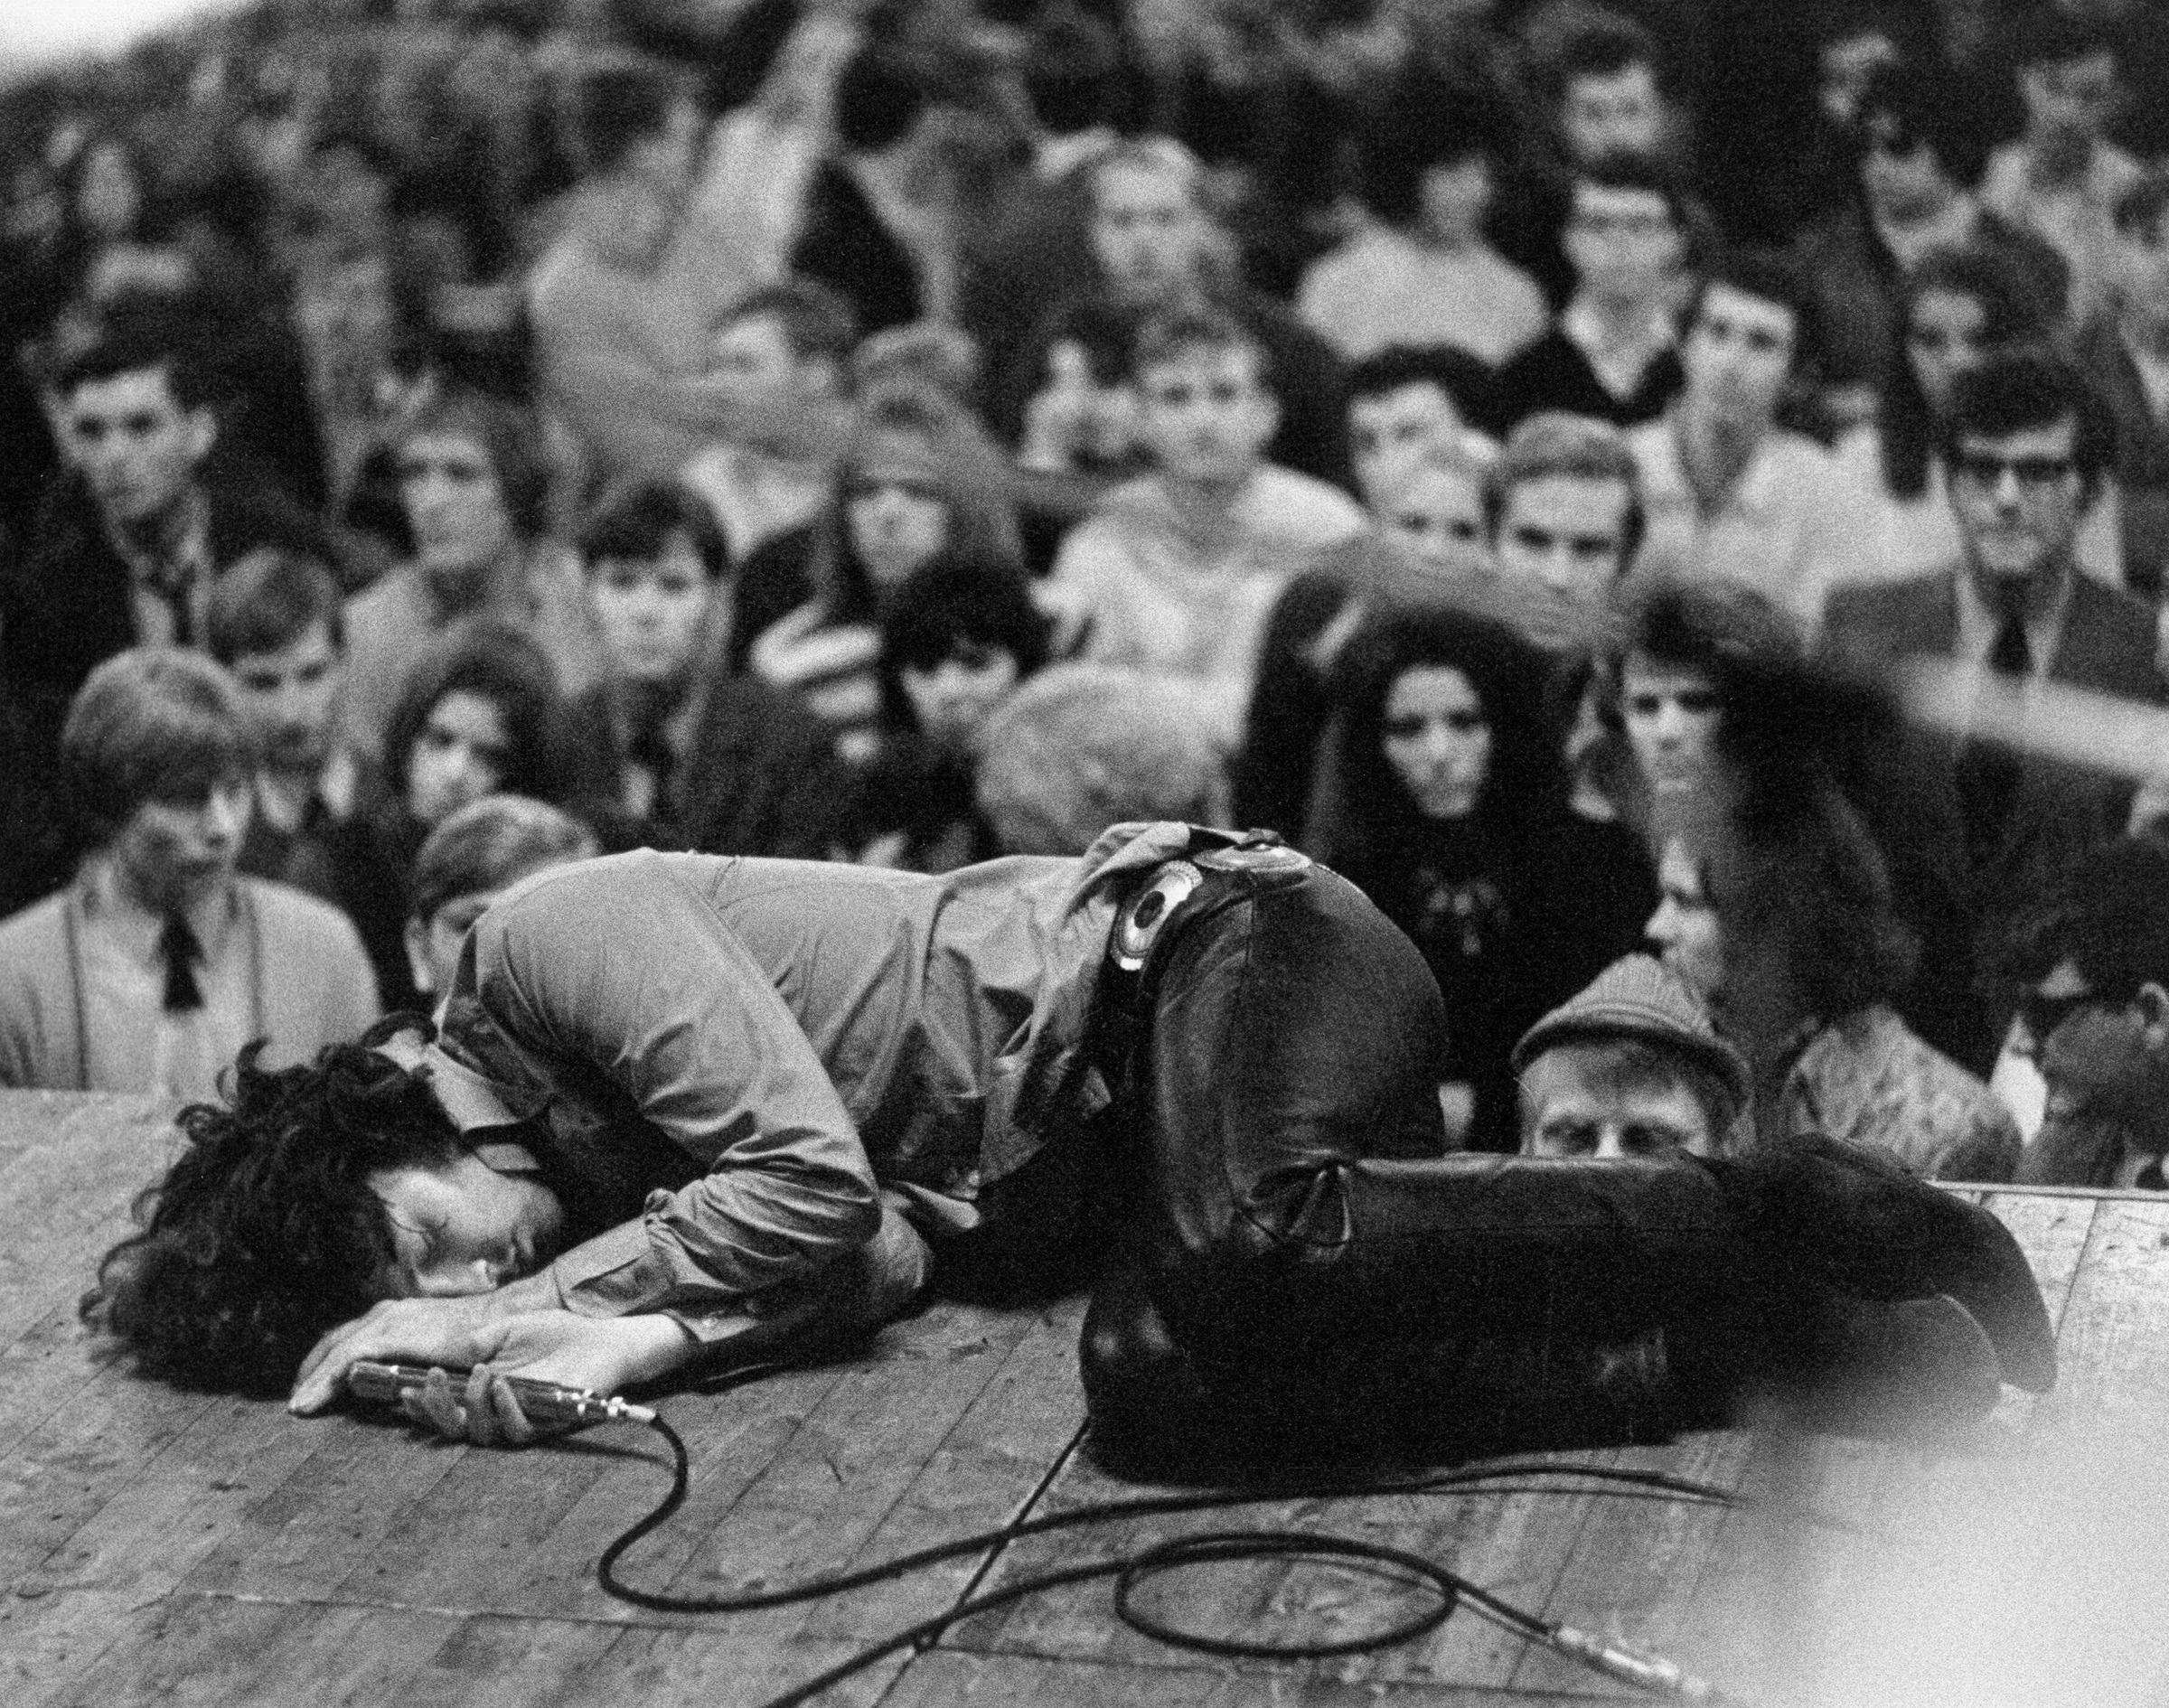 Jim Morrison laying on stage during a performance of The Doors ...